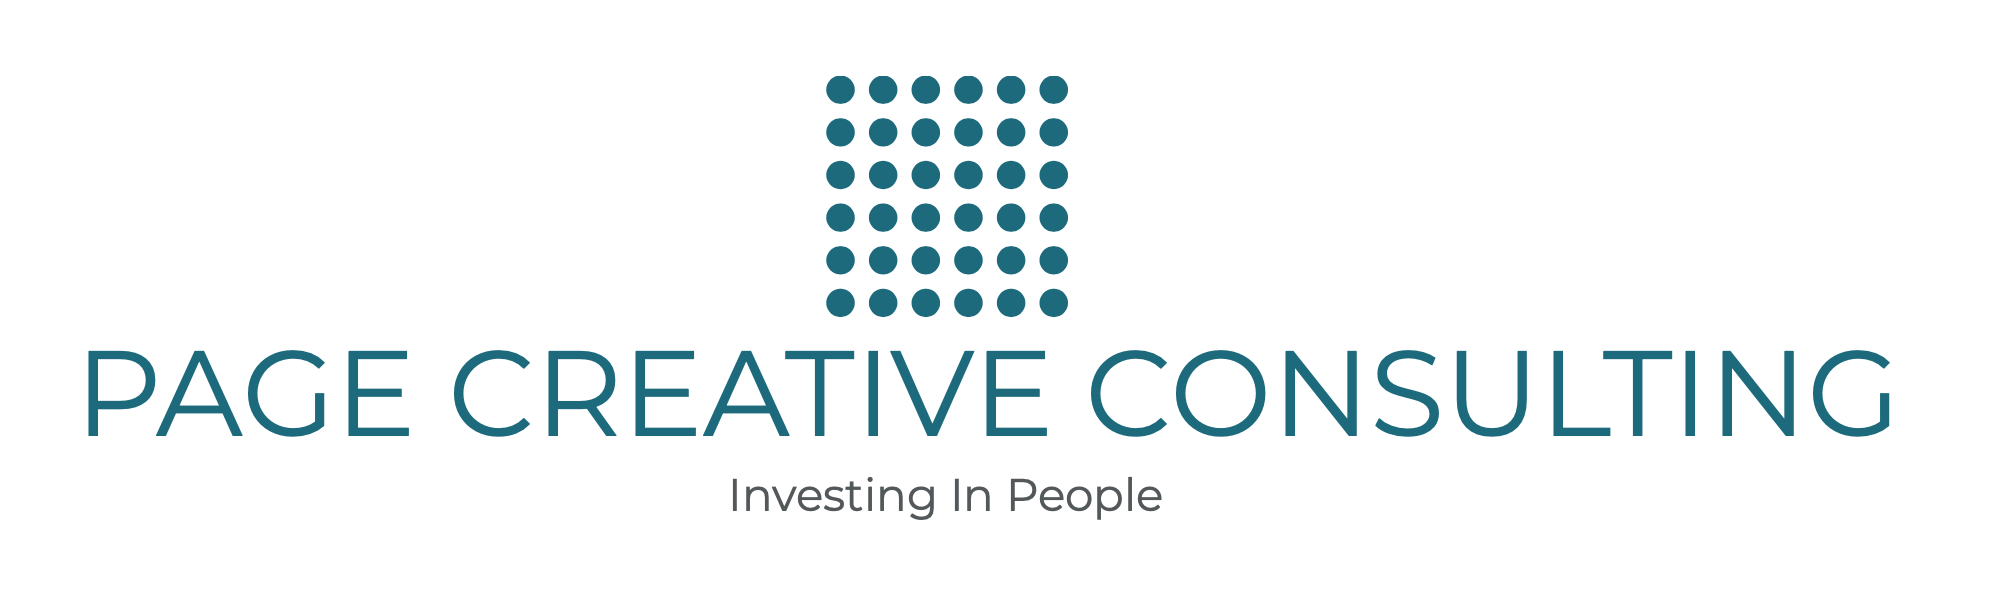 PAGE CREATIVE CONSULTING-logo.png